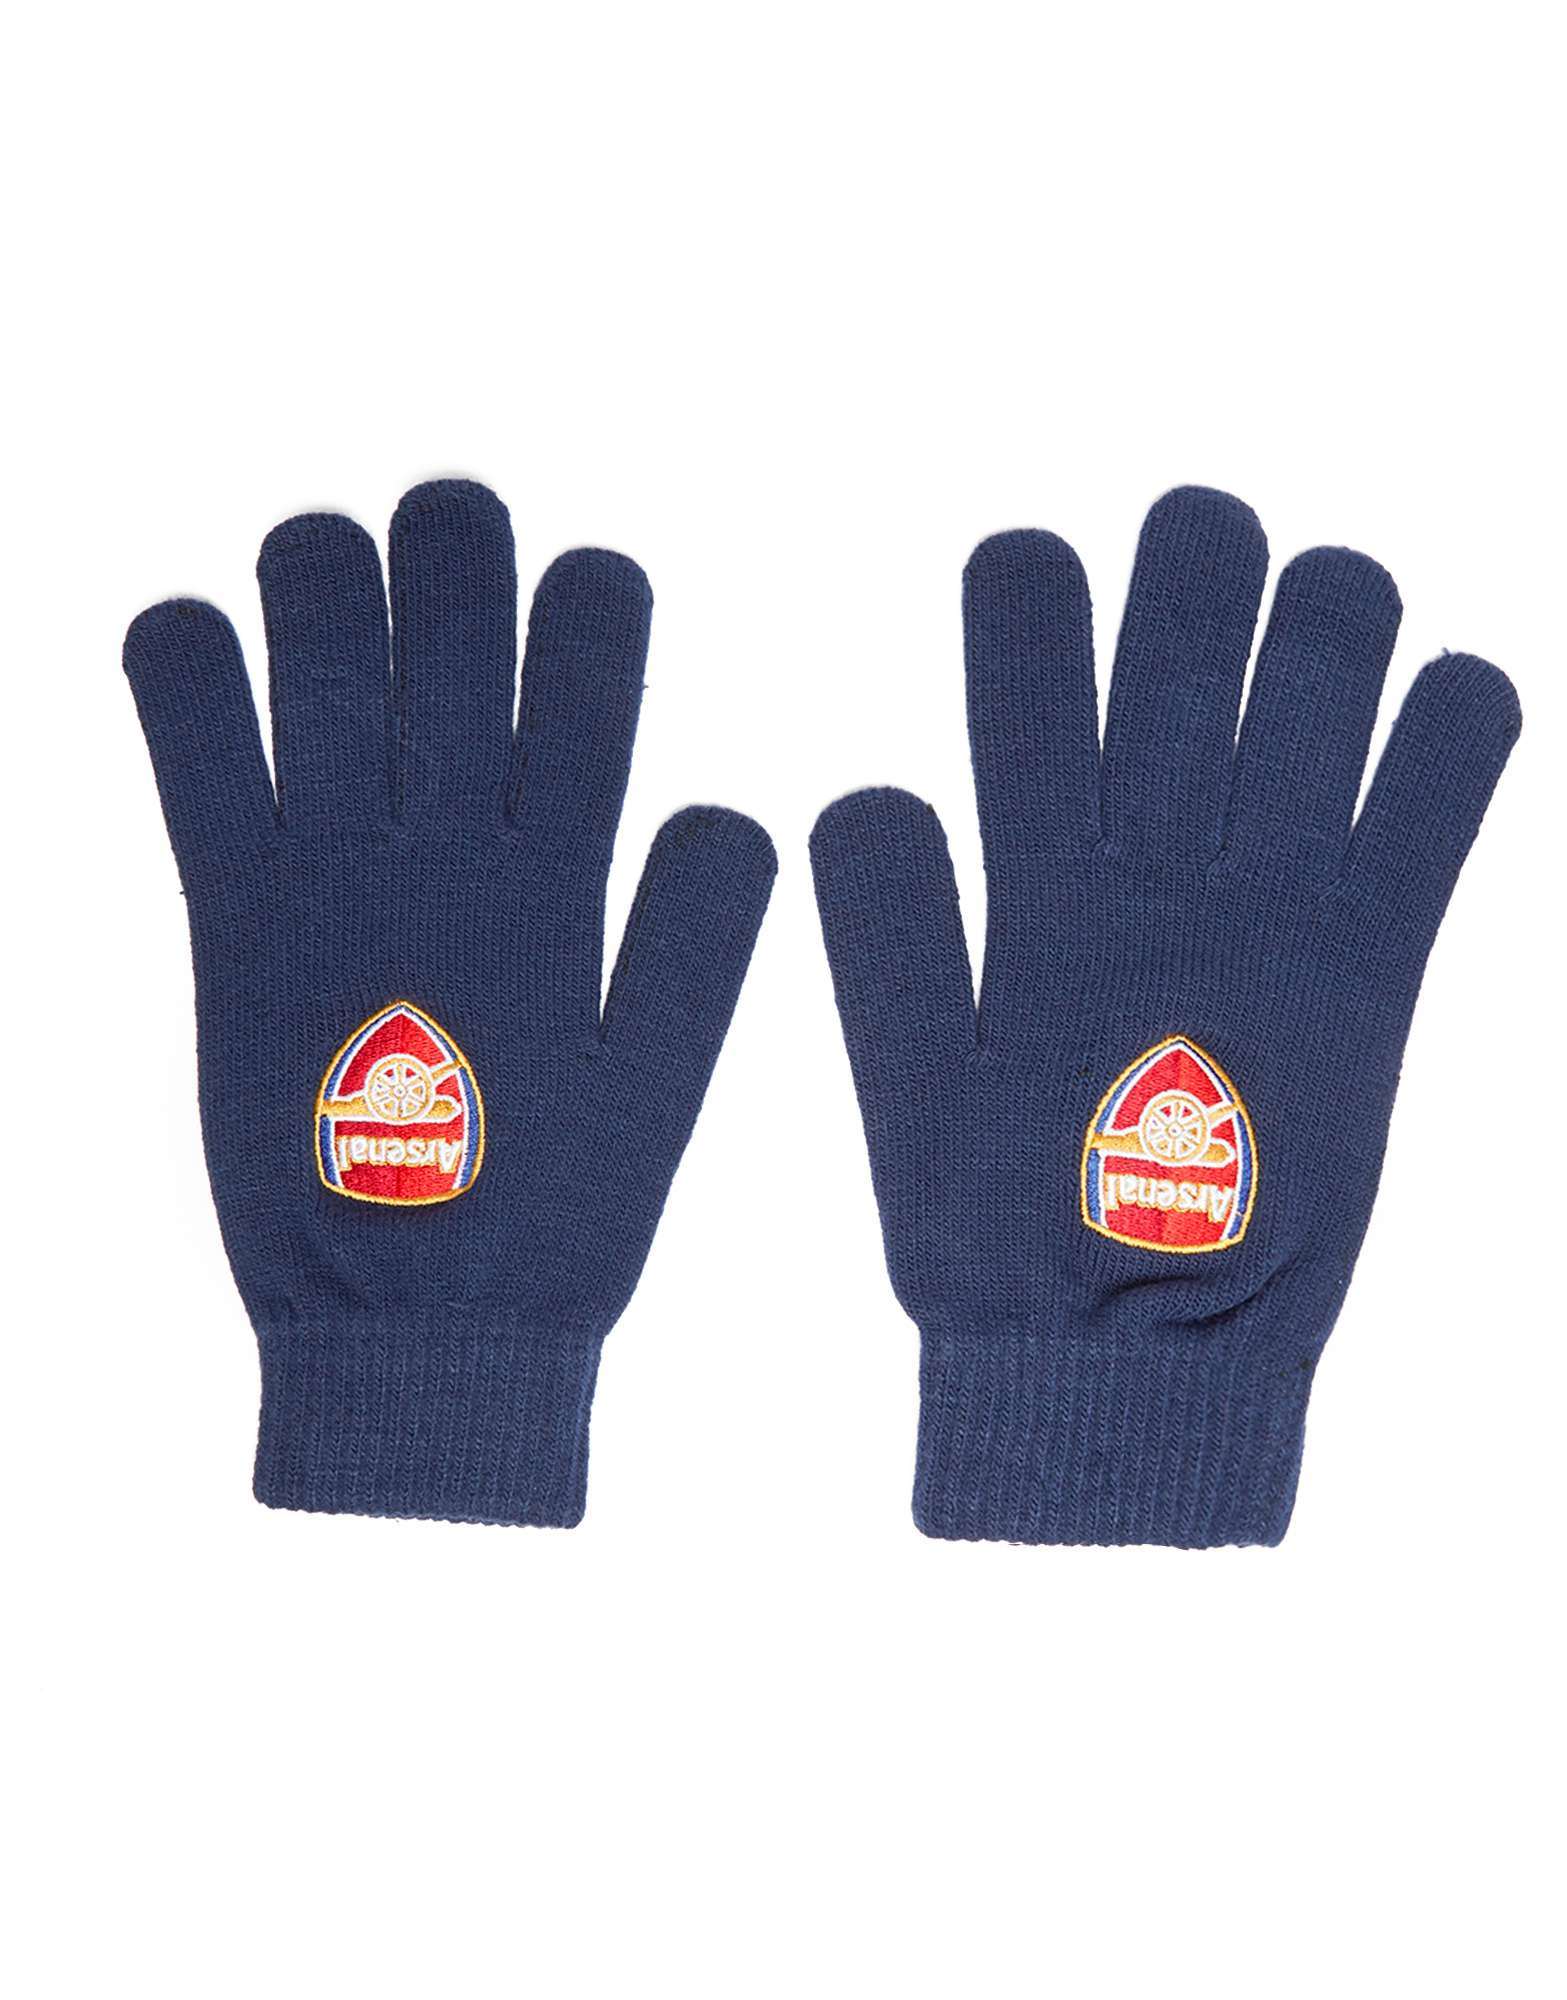 Official Team Arsenal FC Gloves